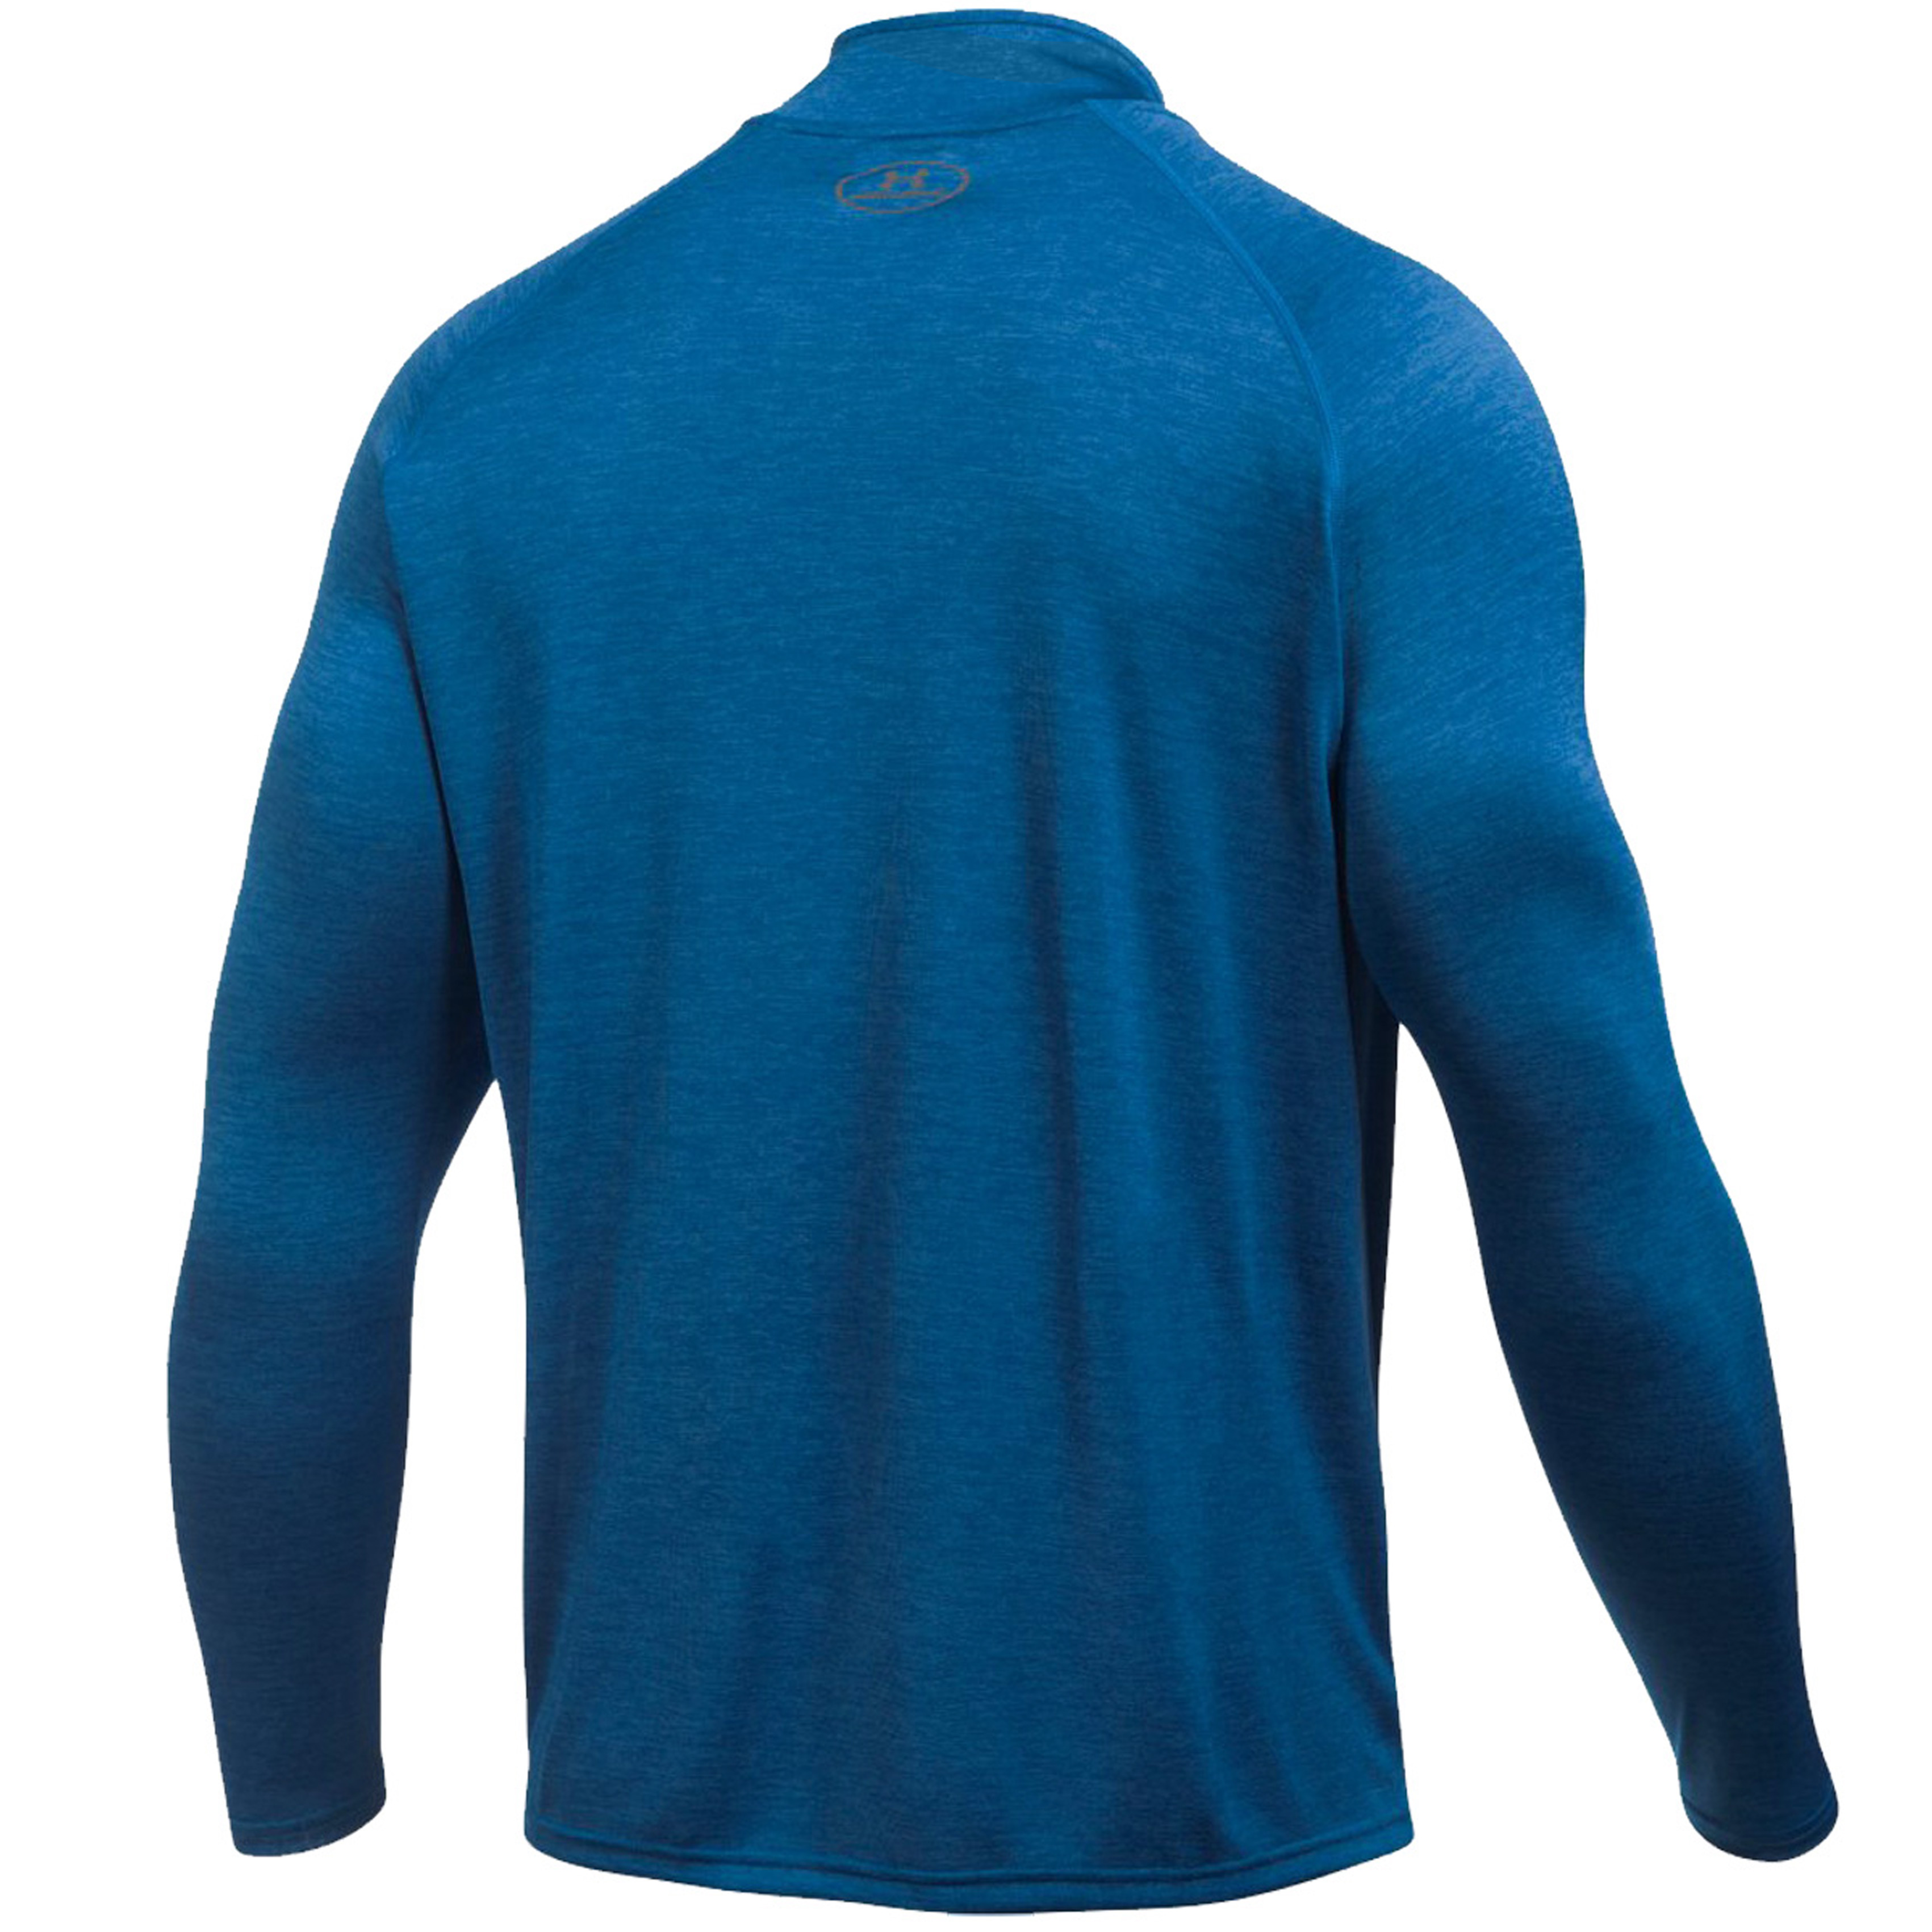 Under-Armour-Mens-UA-Tech-1-4-Zip-Long-Sleeve-Top-Workout-Layer-27-OFF-RRP thumbnail 61